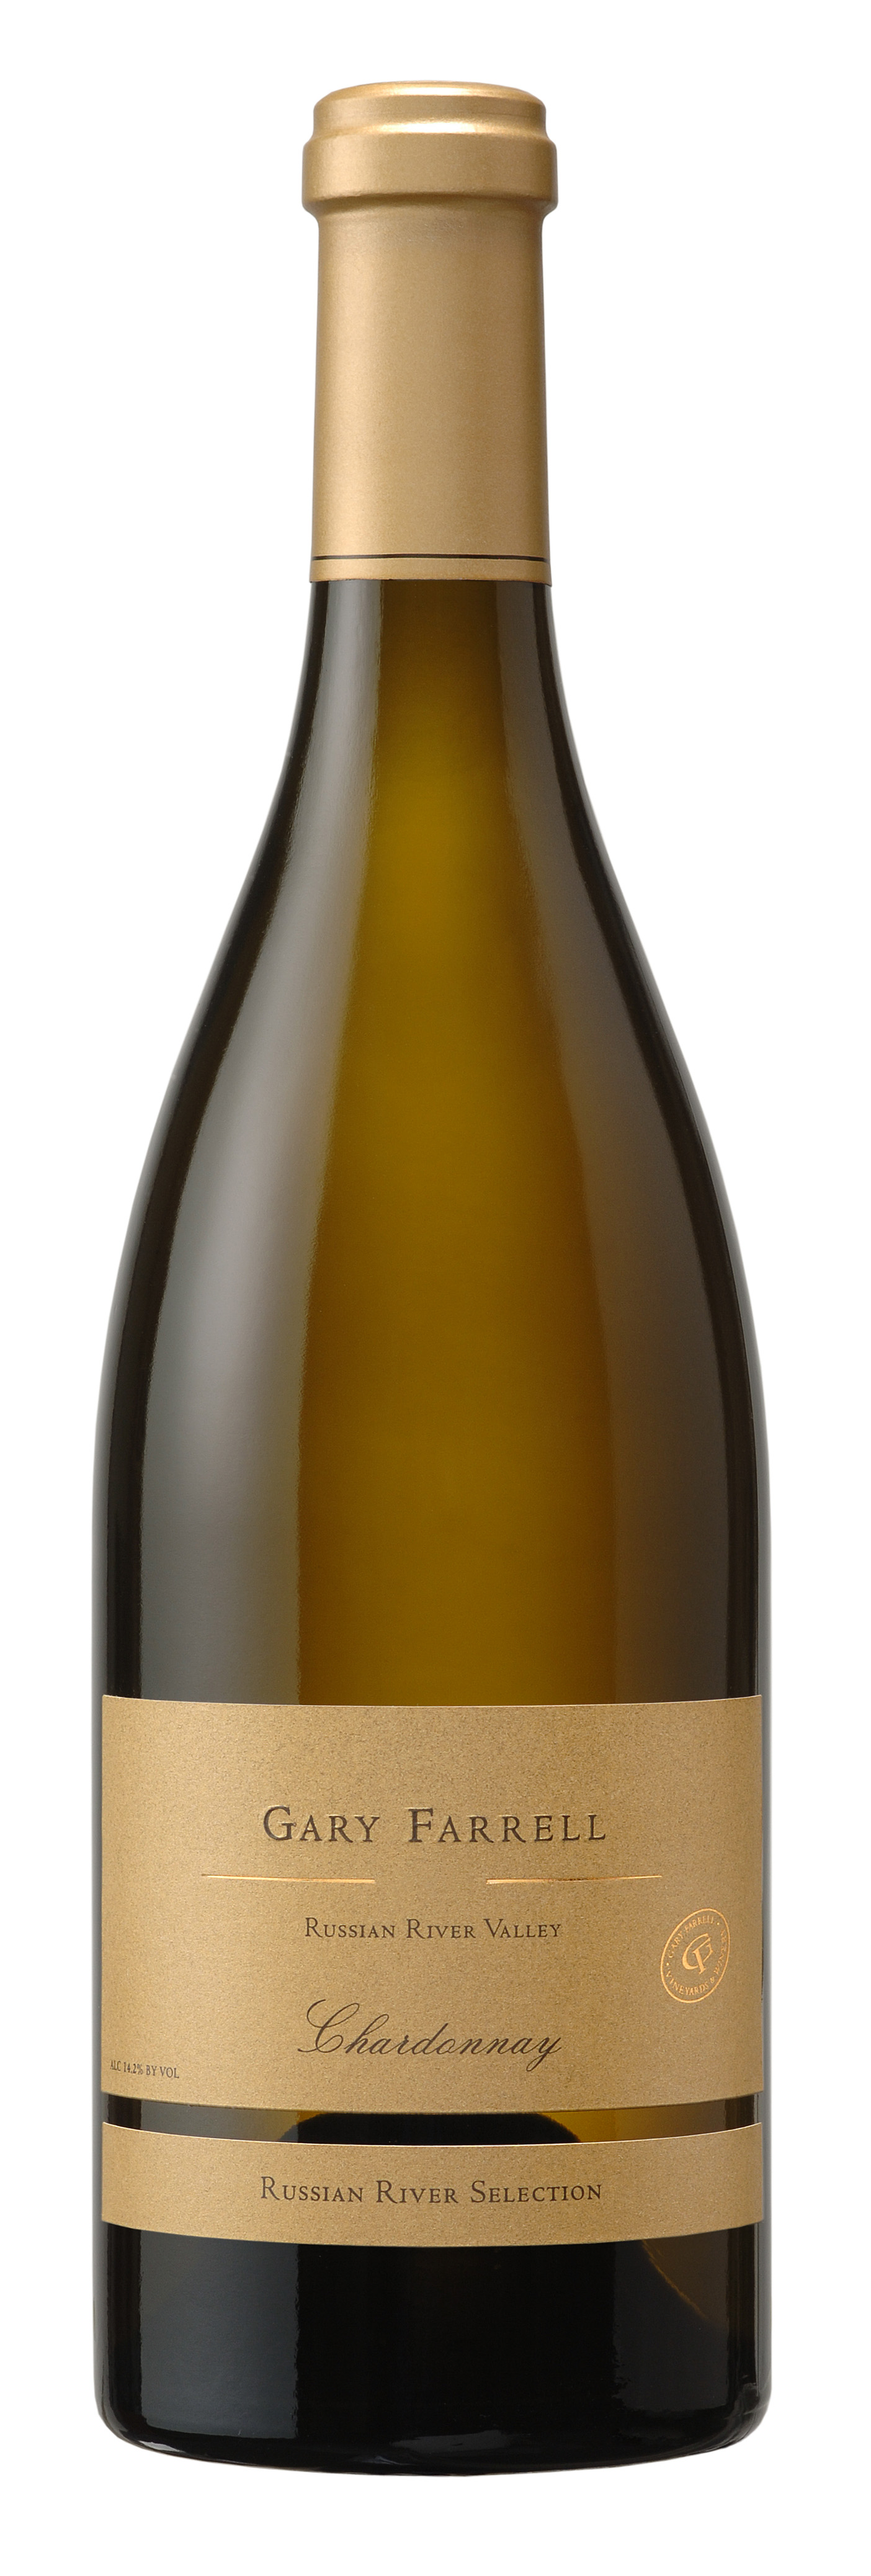 GF_Chardonnay_RussianRiver_NV_750ml_BTL_HighRes